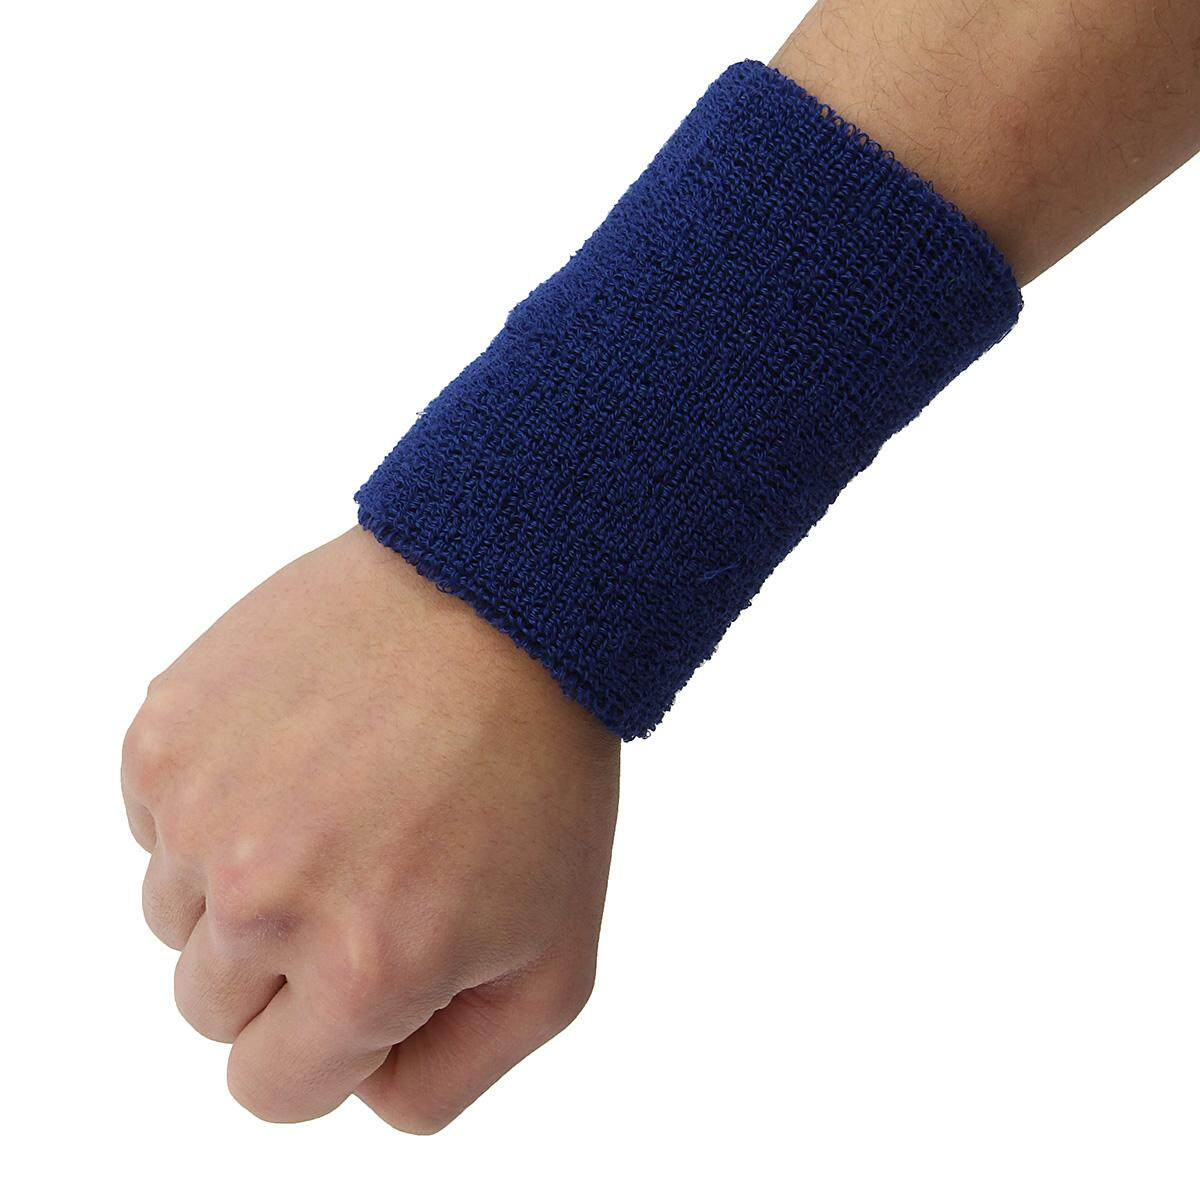 AOLIKES 11X7.5cm Towel Wristband Wrist Hand Protector WrapGuards Gym Wrist Support Sweat band for